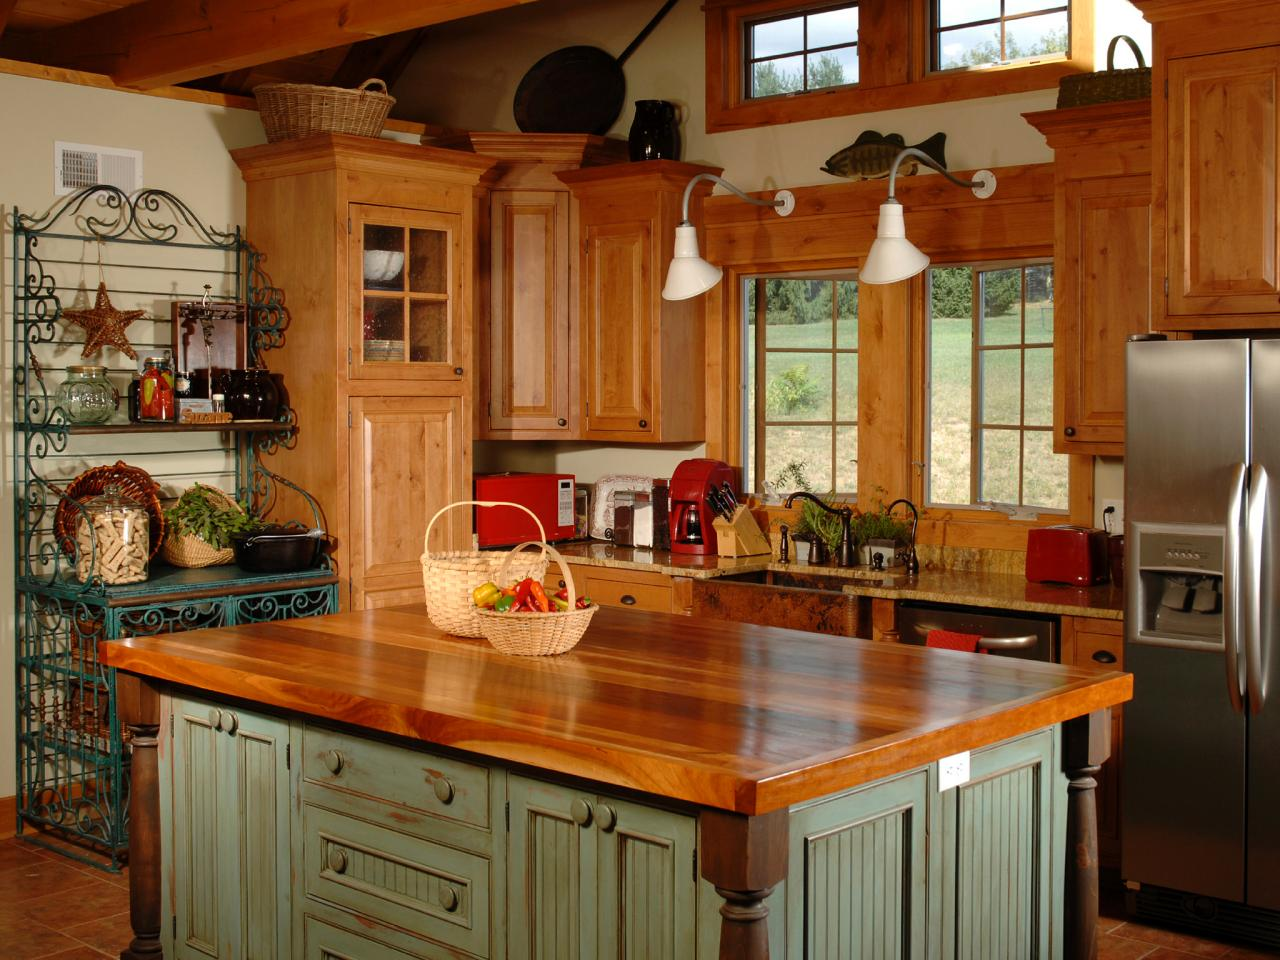 Kitchen Island Design Ideas: Pictures, Options & Tips | HGTV